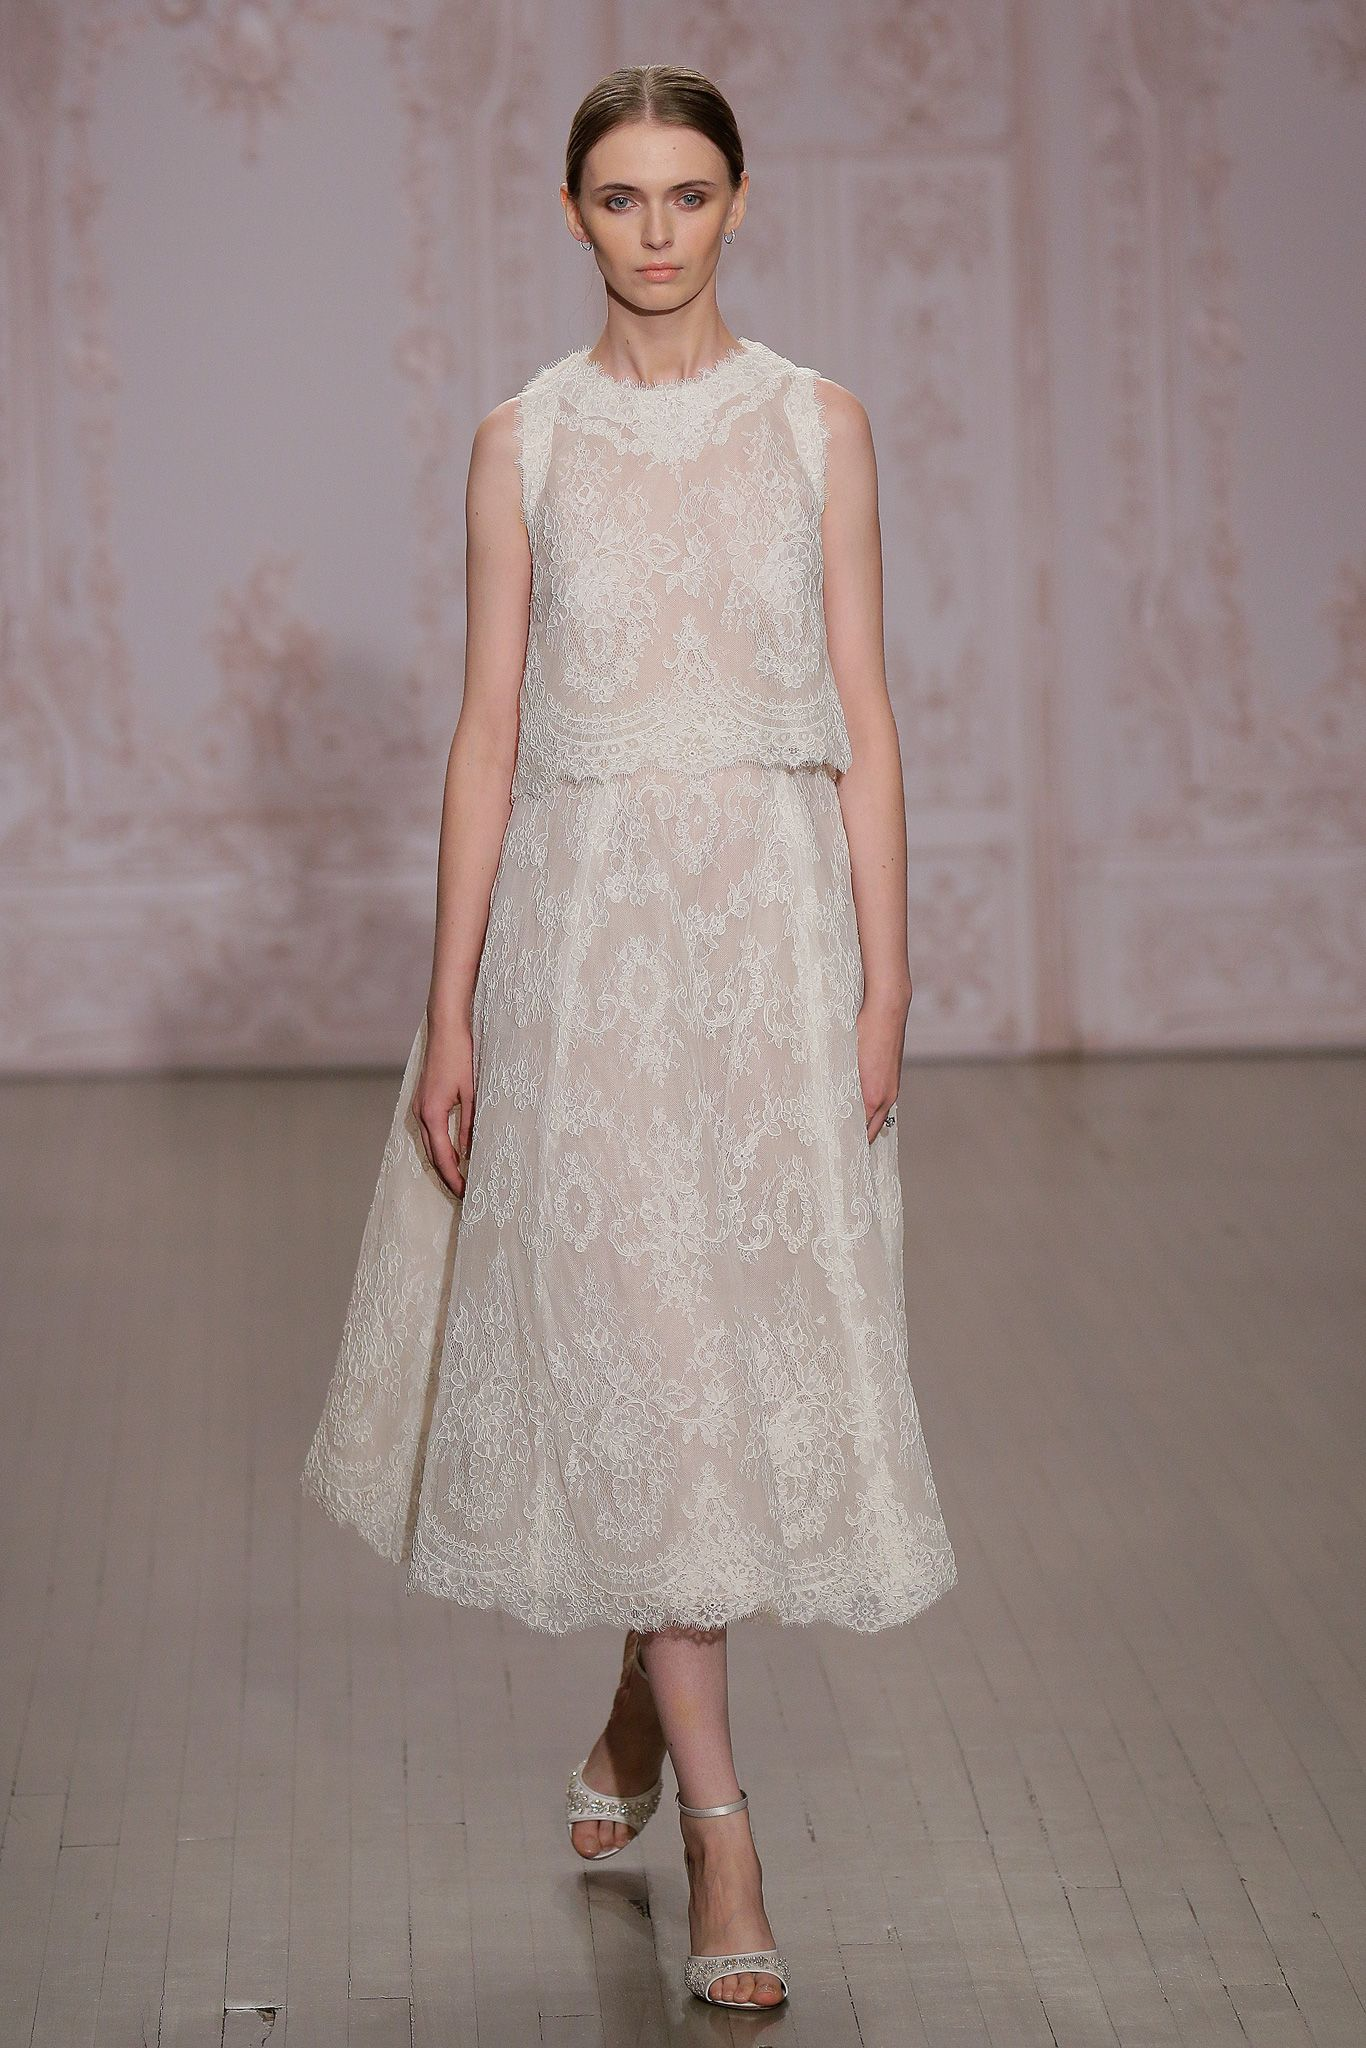 The Best Wedding Dresses From the Fall \'15 Bridal Shows - Gallery ...